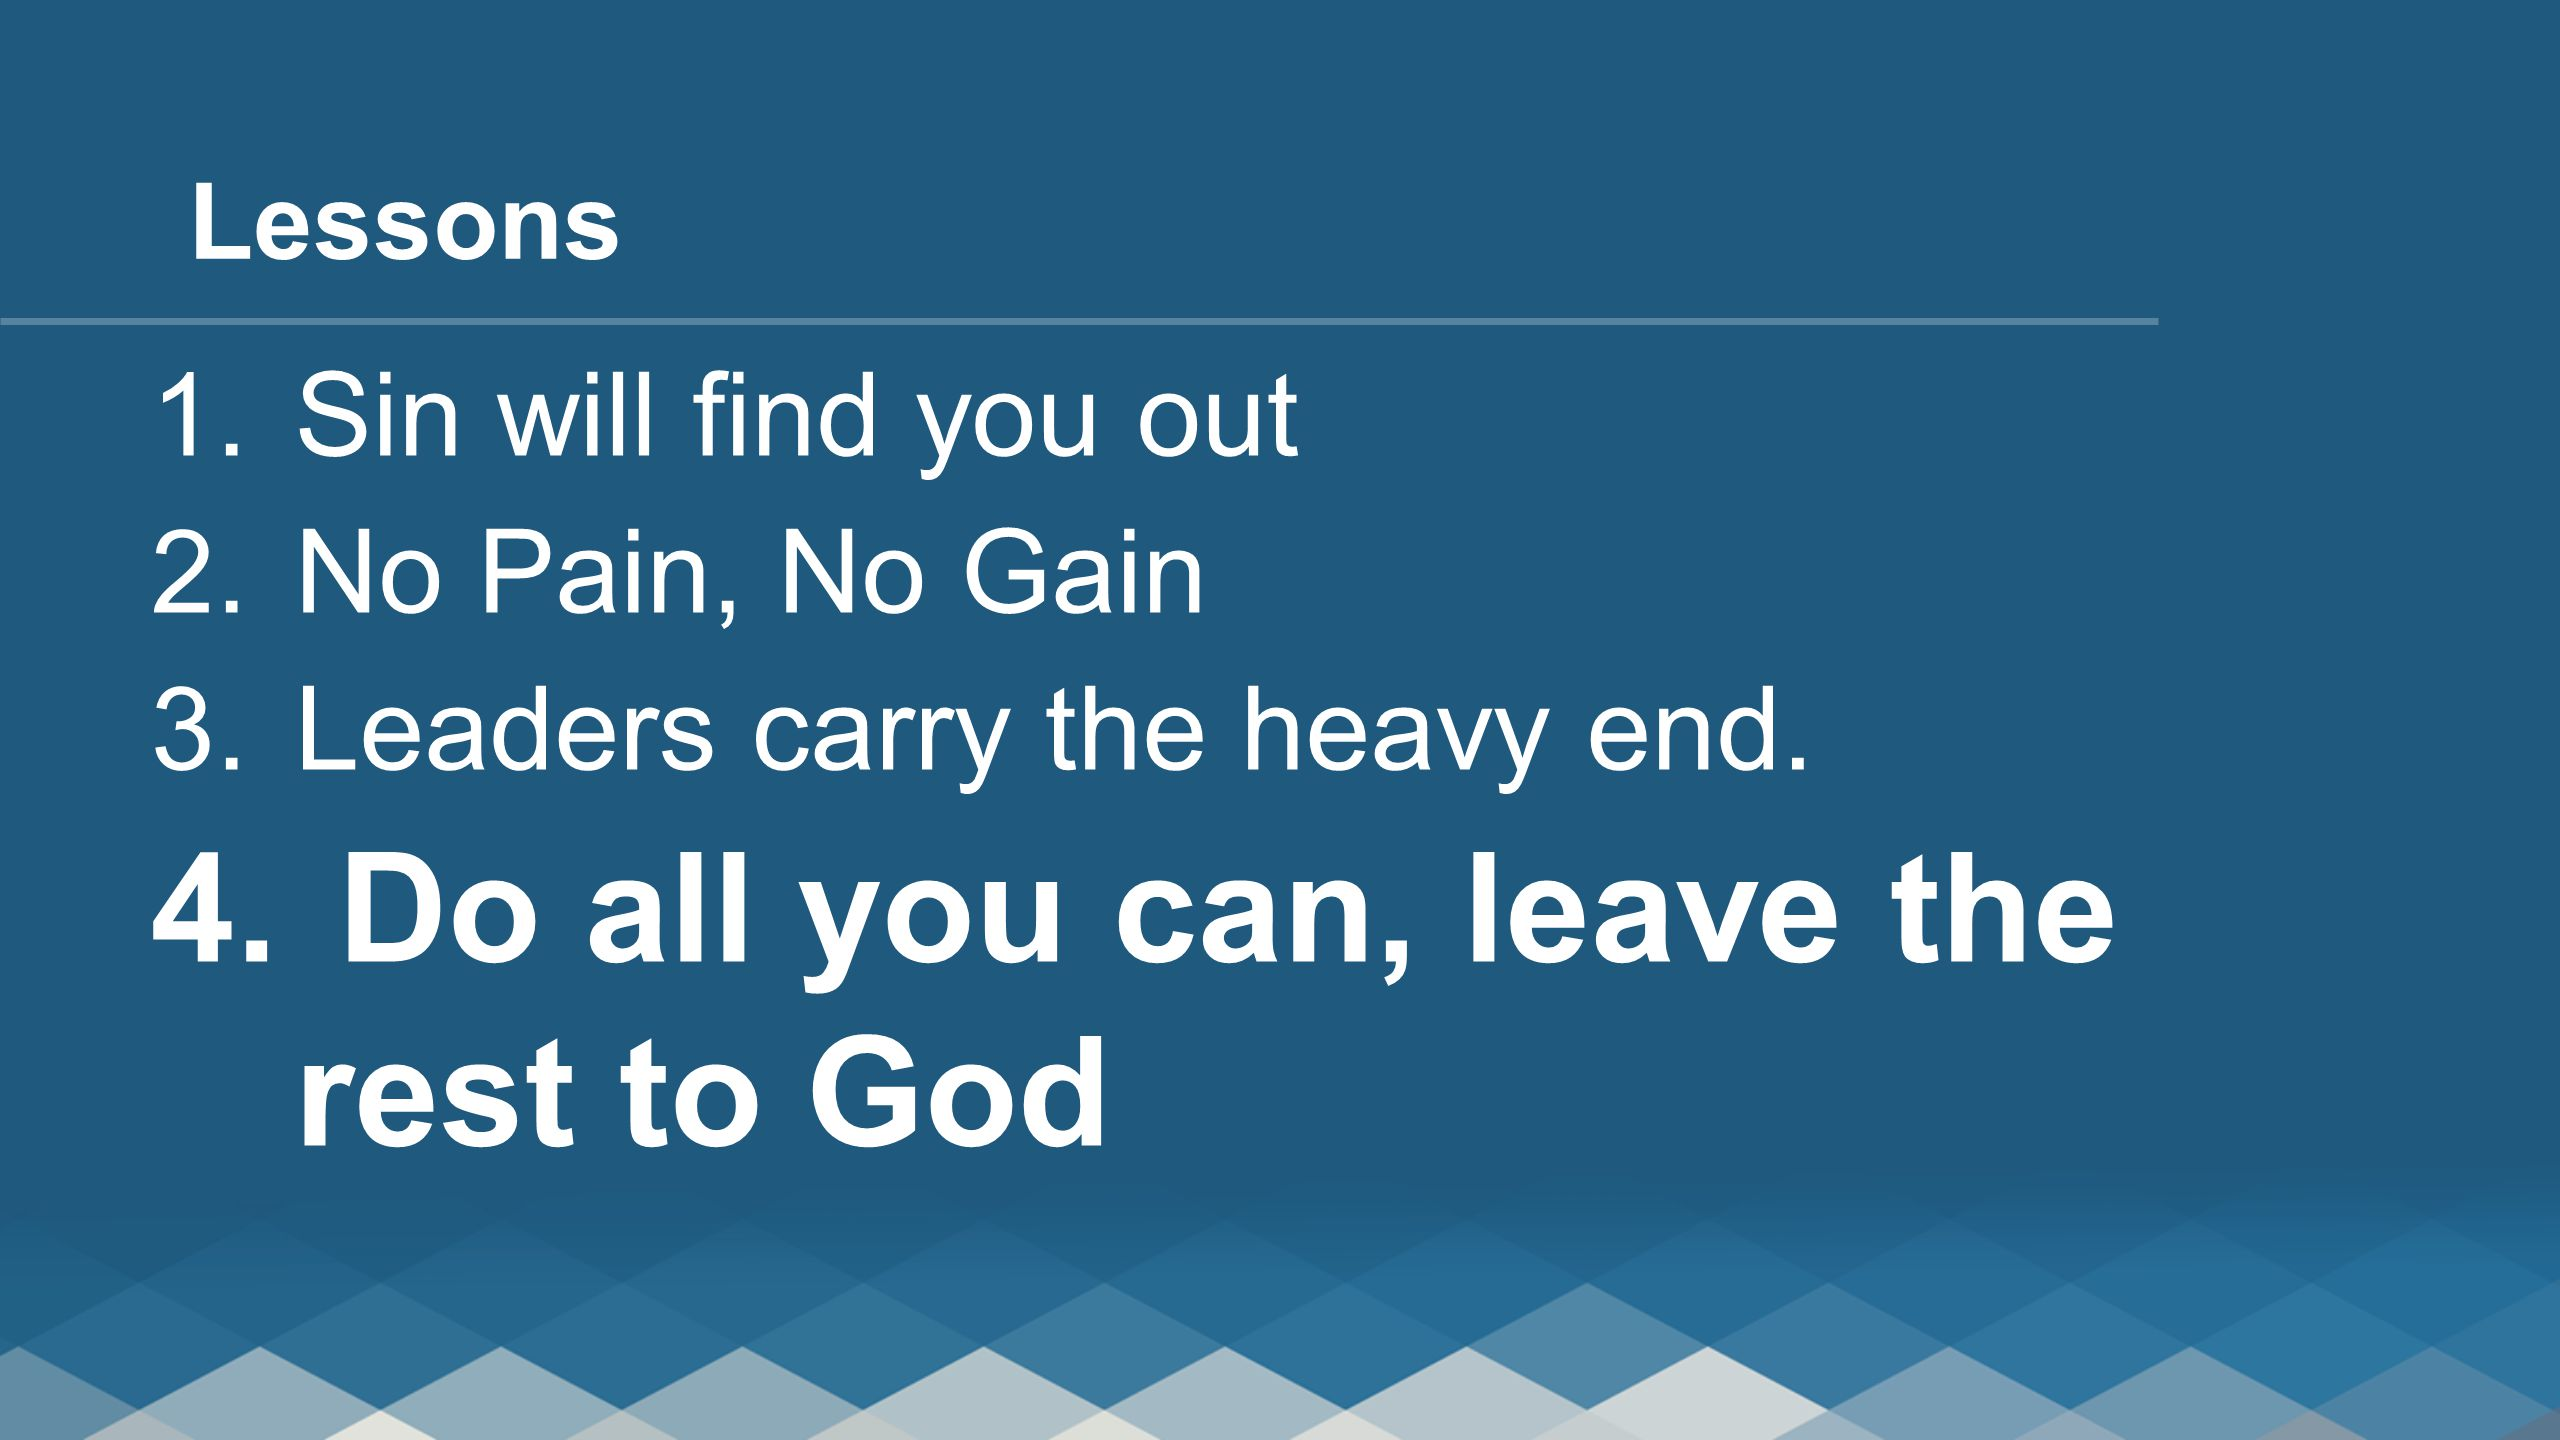 Do all you can, leave the rest to God